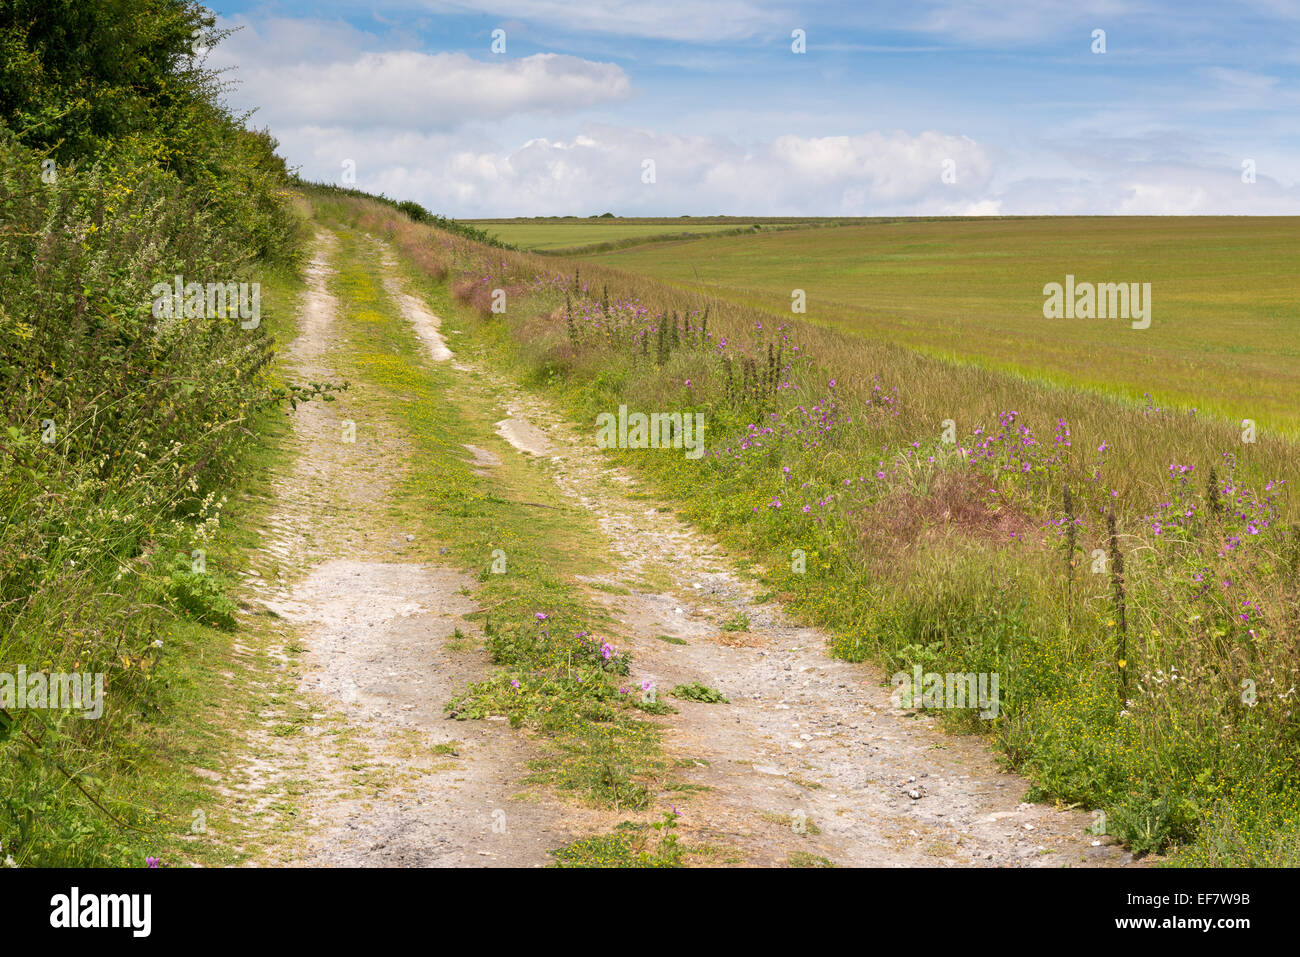 Farm track beside a field of wheat, with wild flowers - Stock Image